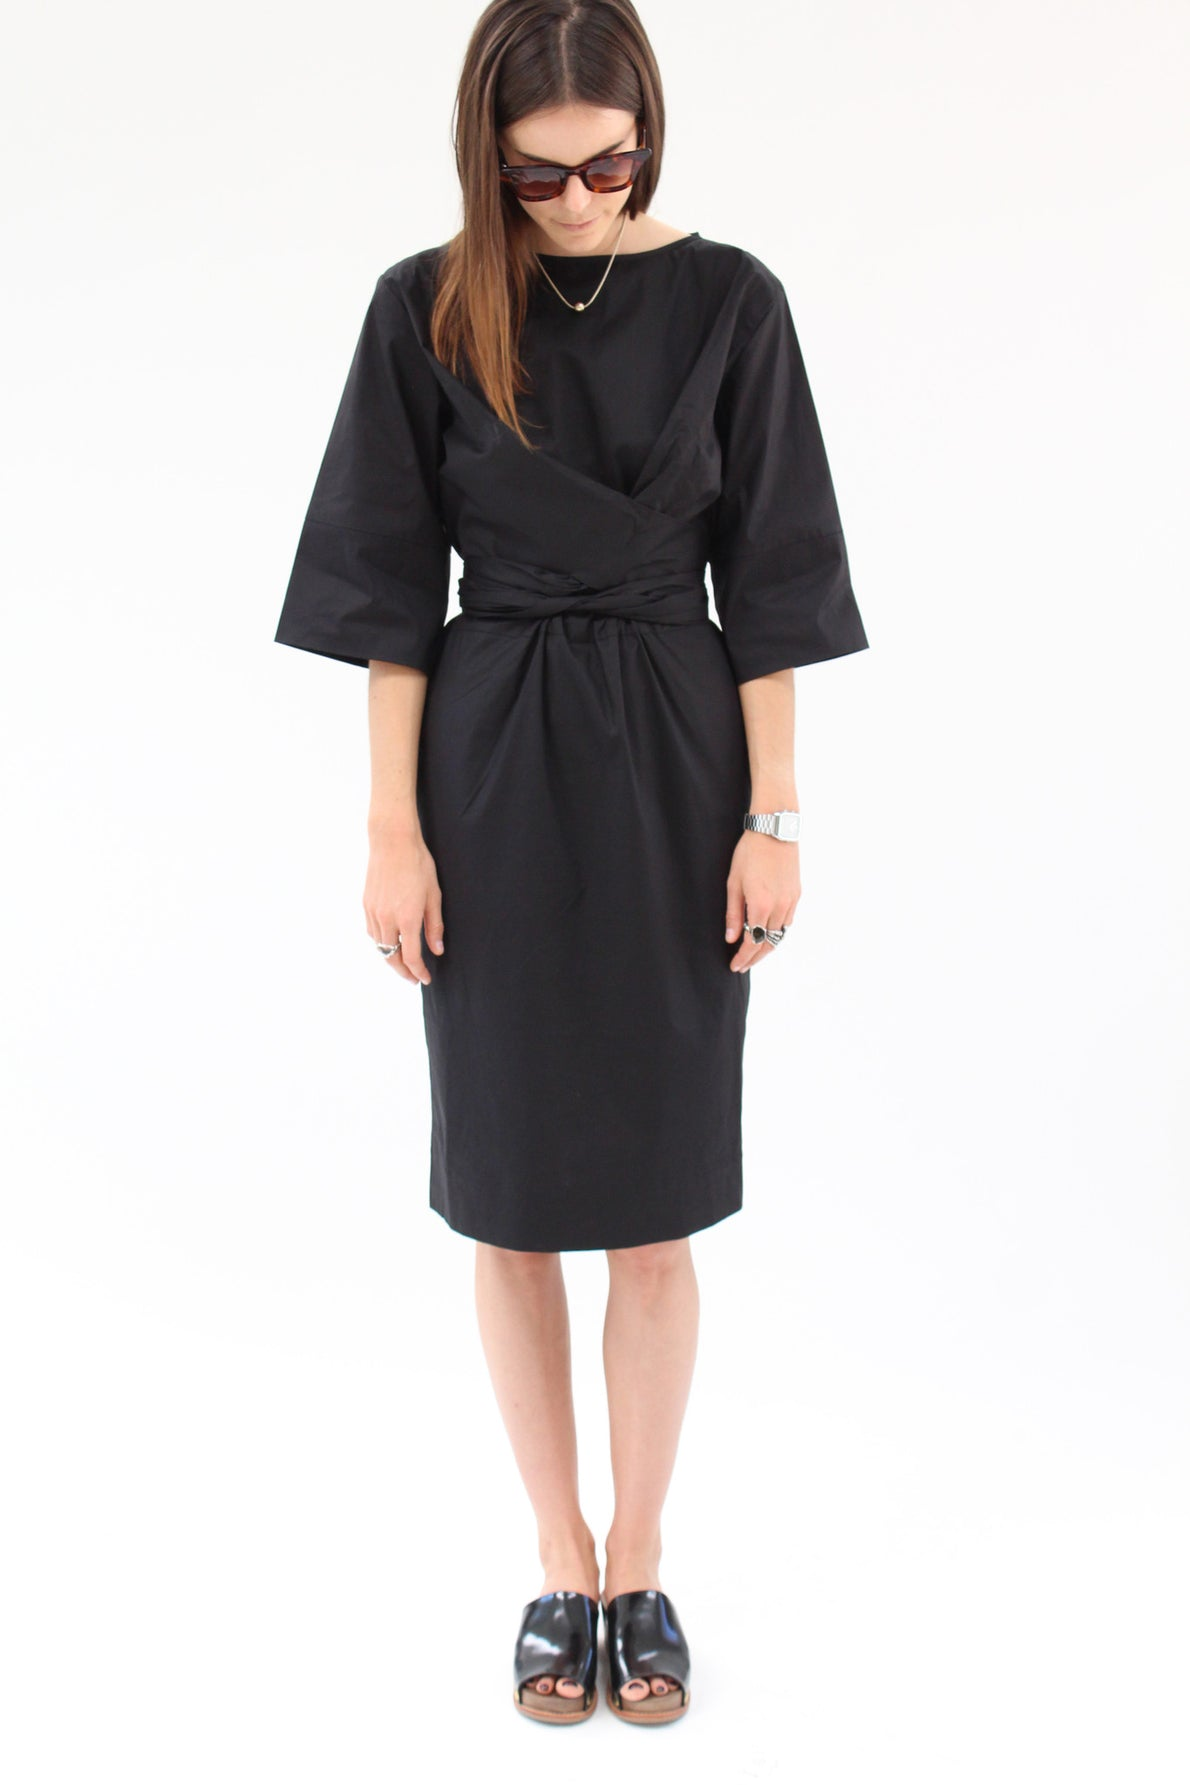 Gary Bigeni Harper Dress Black / Beklina